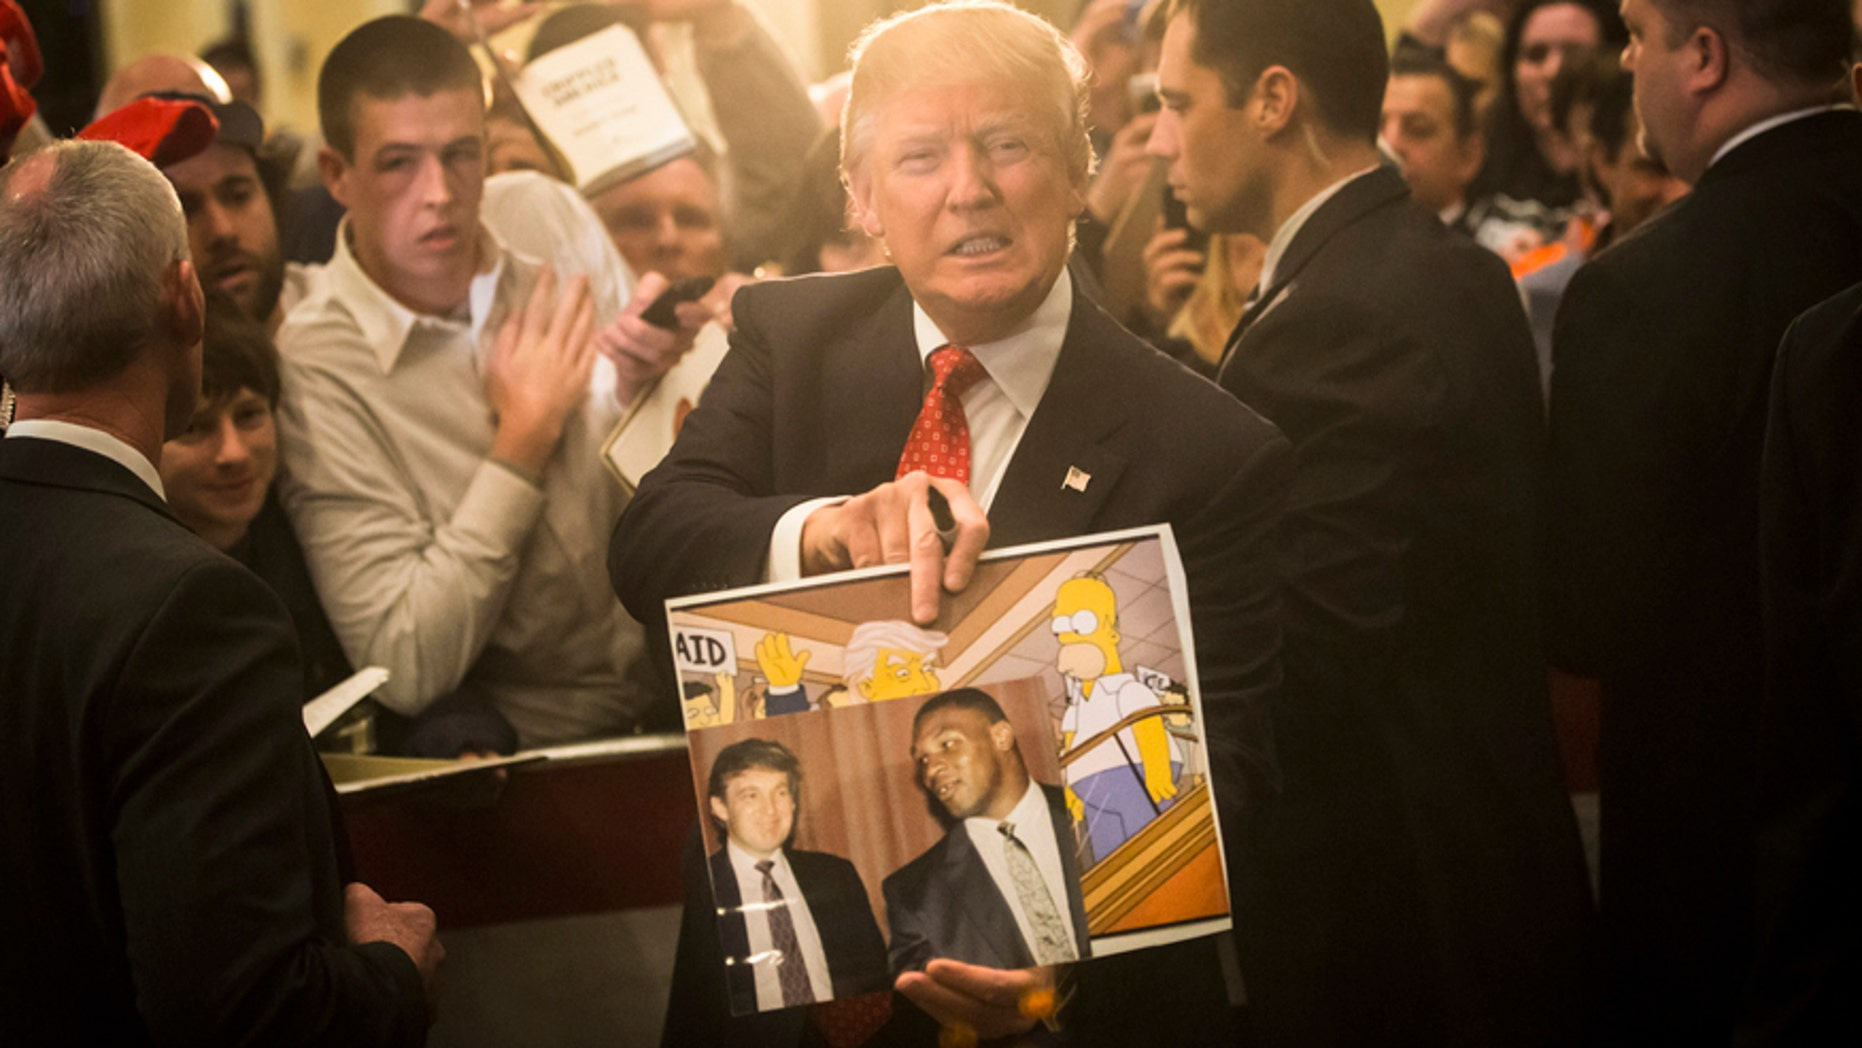 """In this Jan. 29, 2016, file photo, Republican presidential candidate Donald Trump holds depictions of himself on, """"The Simpsons"""" and a photo with boxer Mike Tyson, given to him by an attendee during a campaign stop at the Radisson Hotel in Nashua, N.H. """"The Simpsons"""" released a short online clip on April 26, 2017, mocking President Donald Trump ahead of his 100th day in office."""